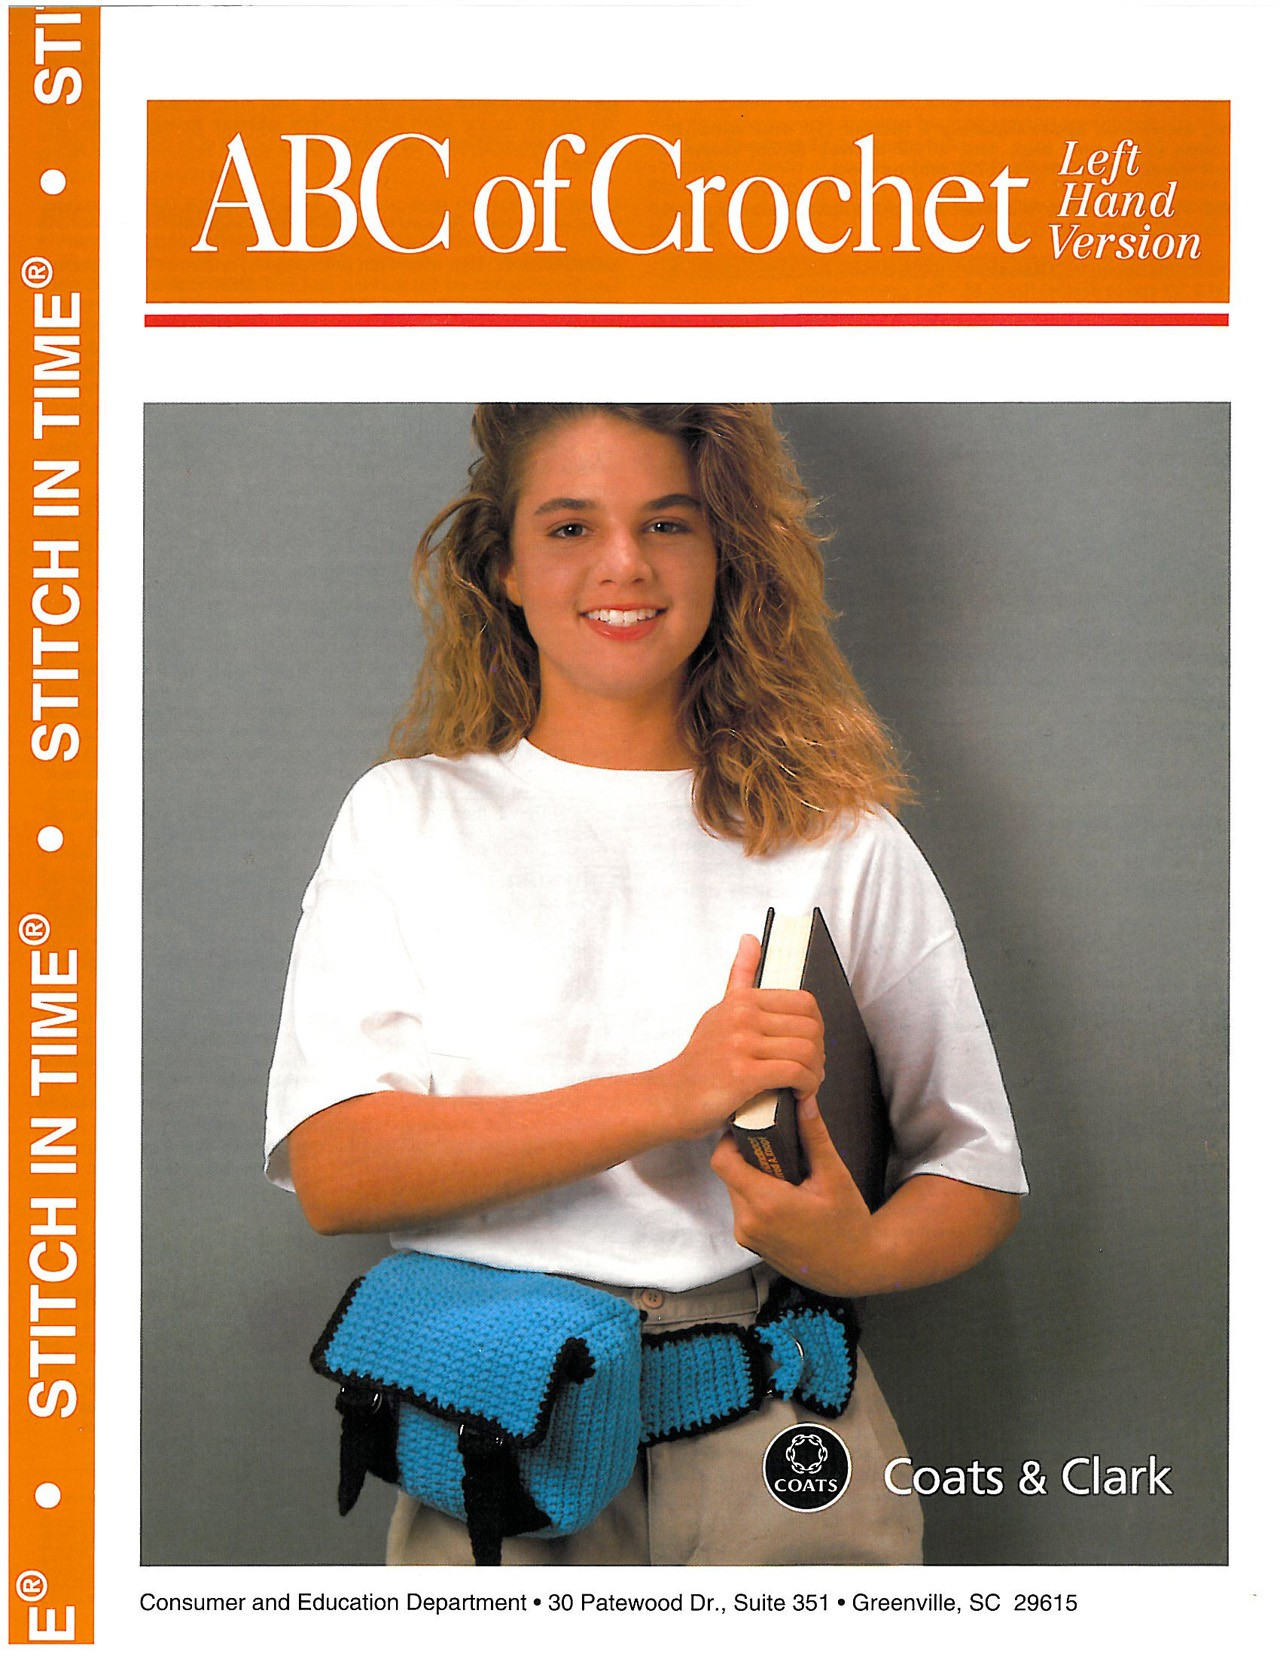 ABC of Crochet – Left Hand Version